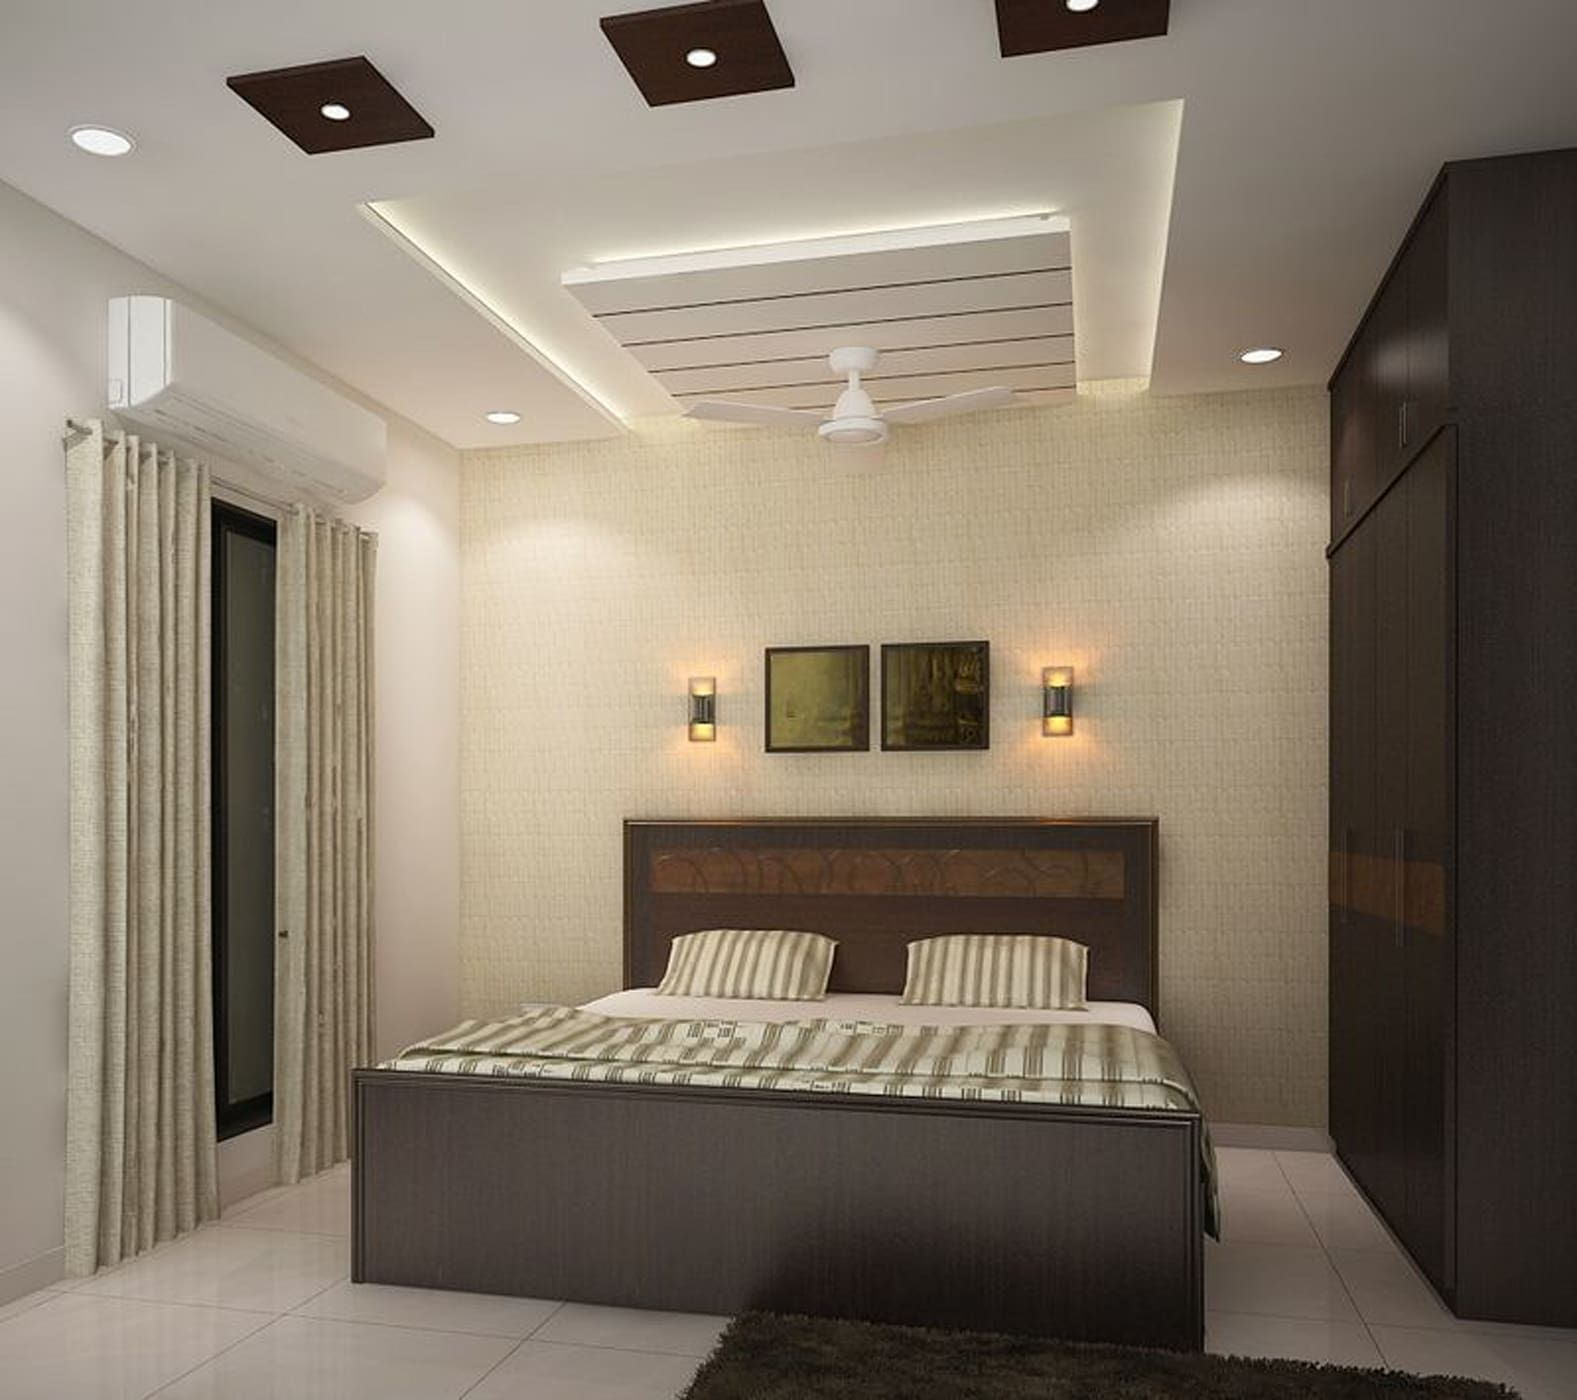 4 bedroom apartment at sjr watermark bedroom by ace